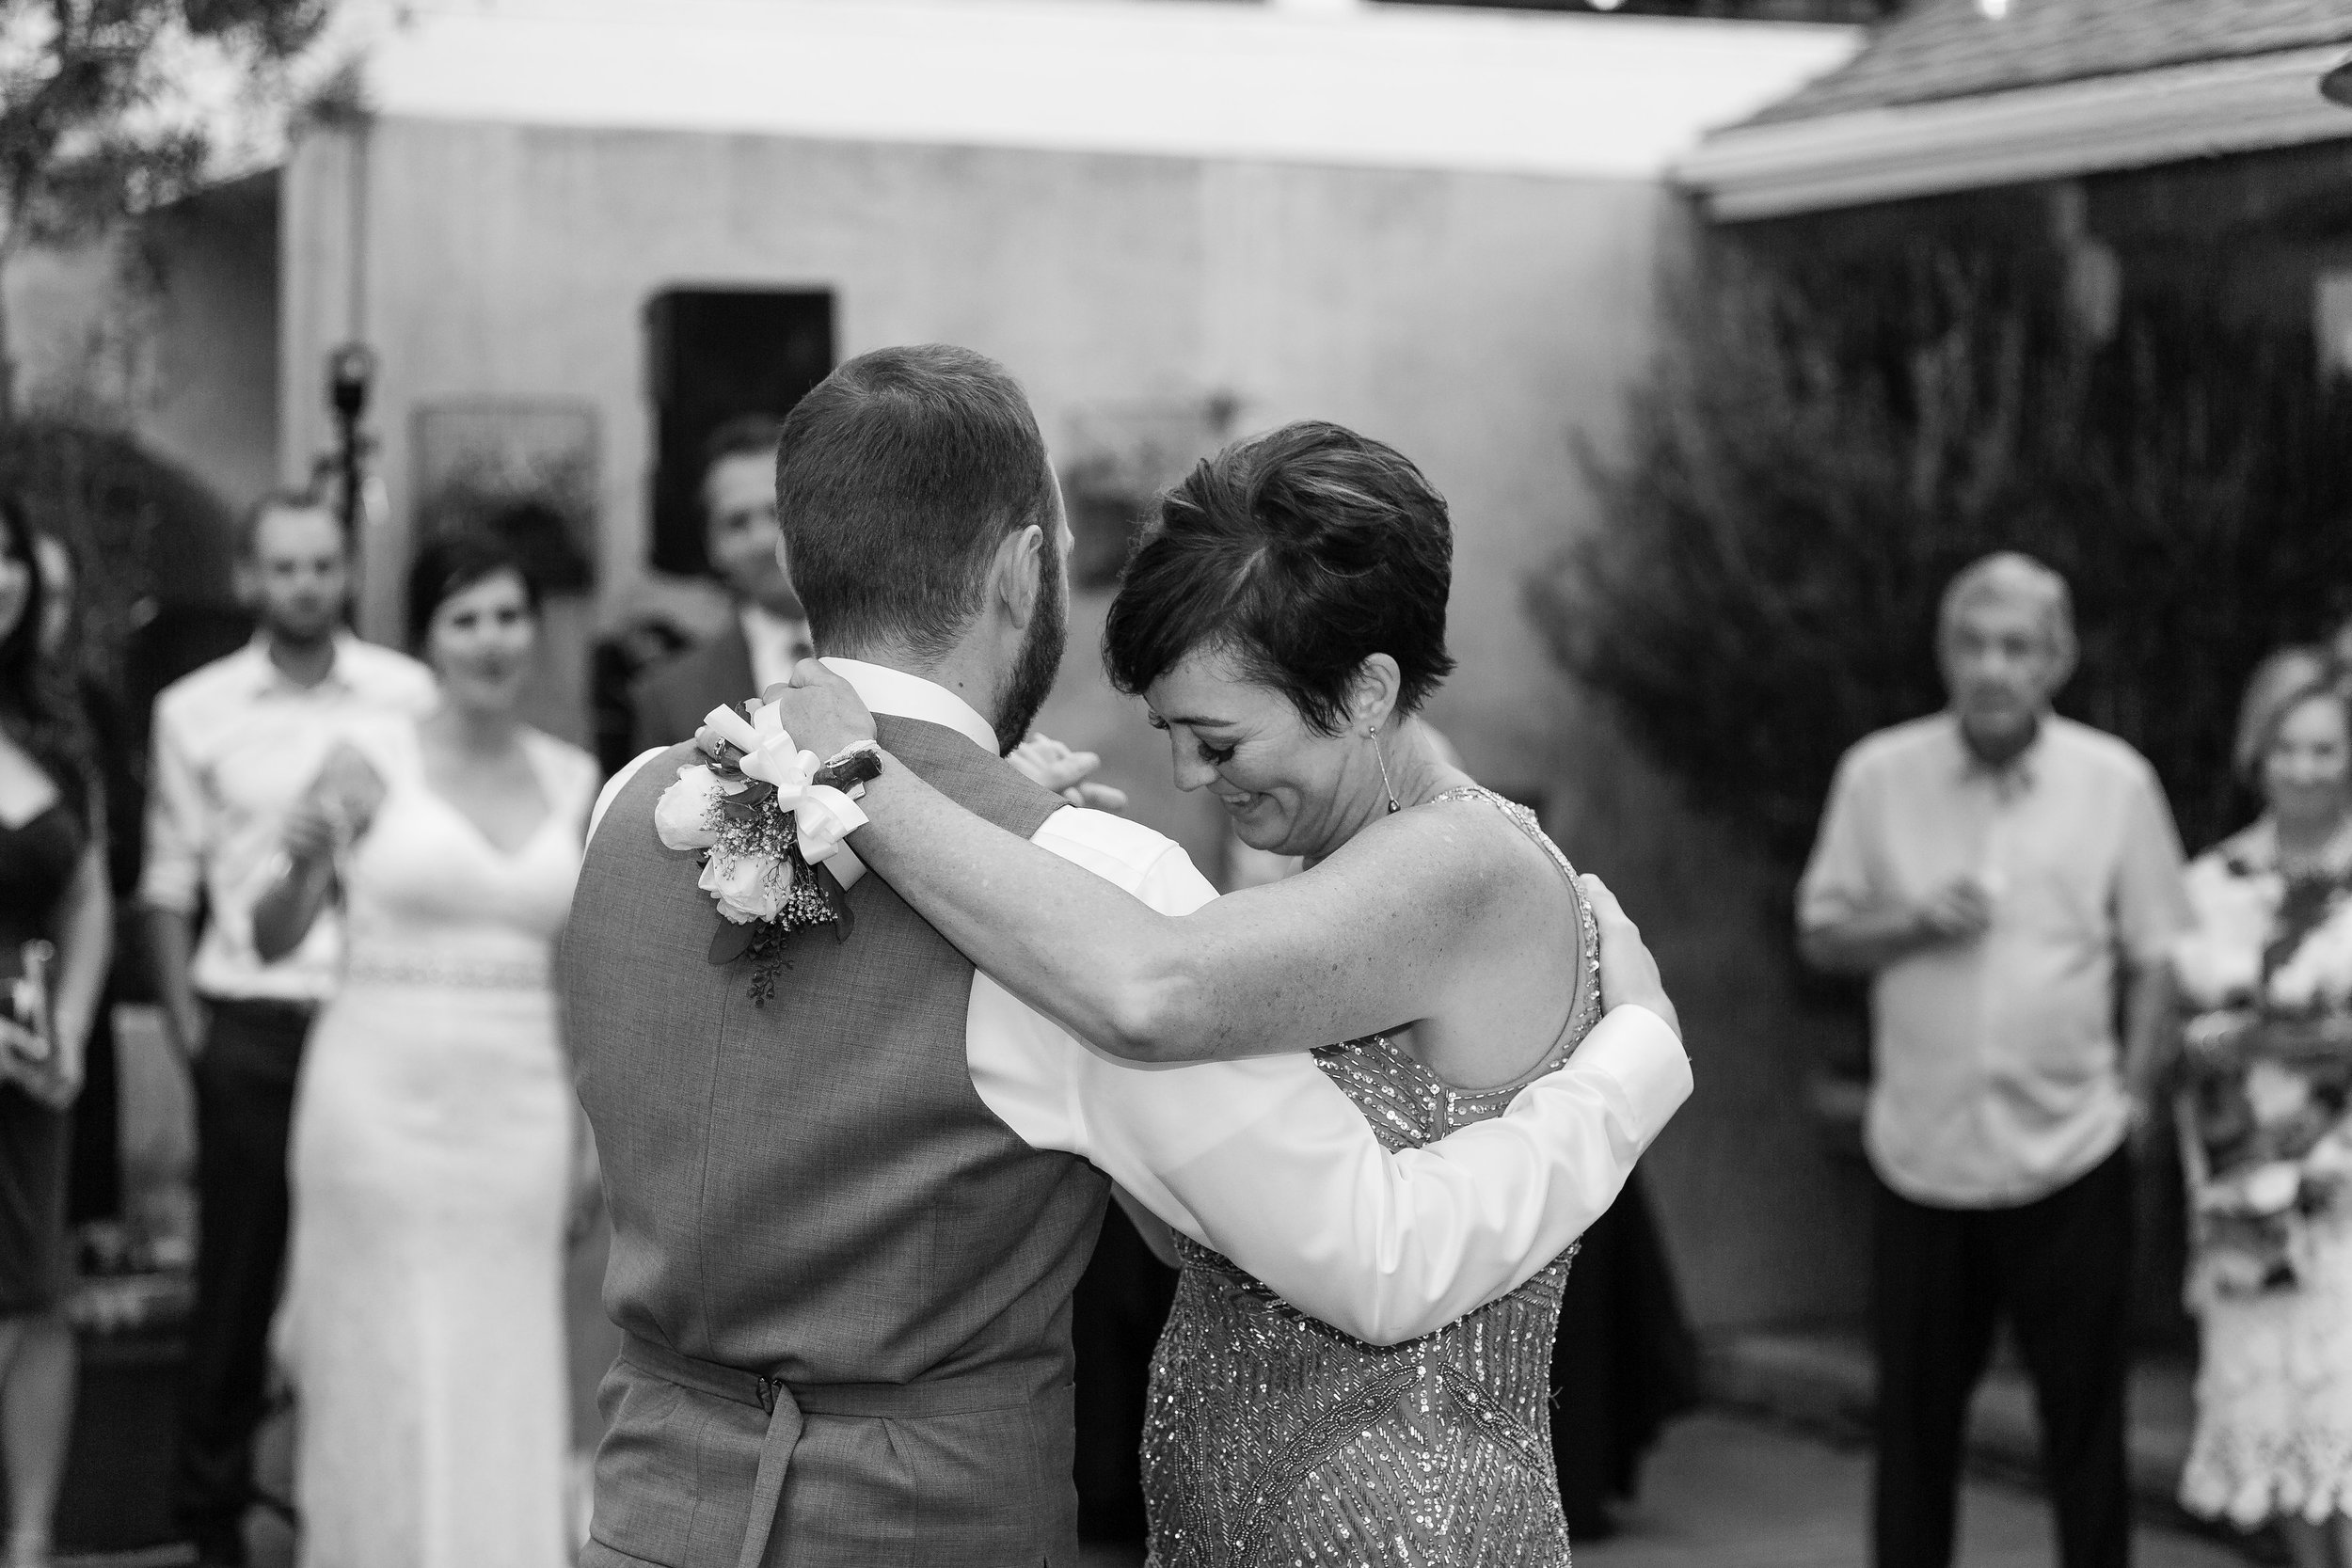 Photo of Mother Son Dance at Wedding Reception.jpg